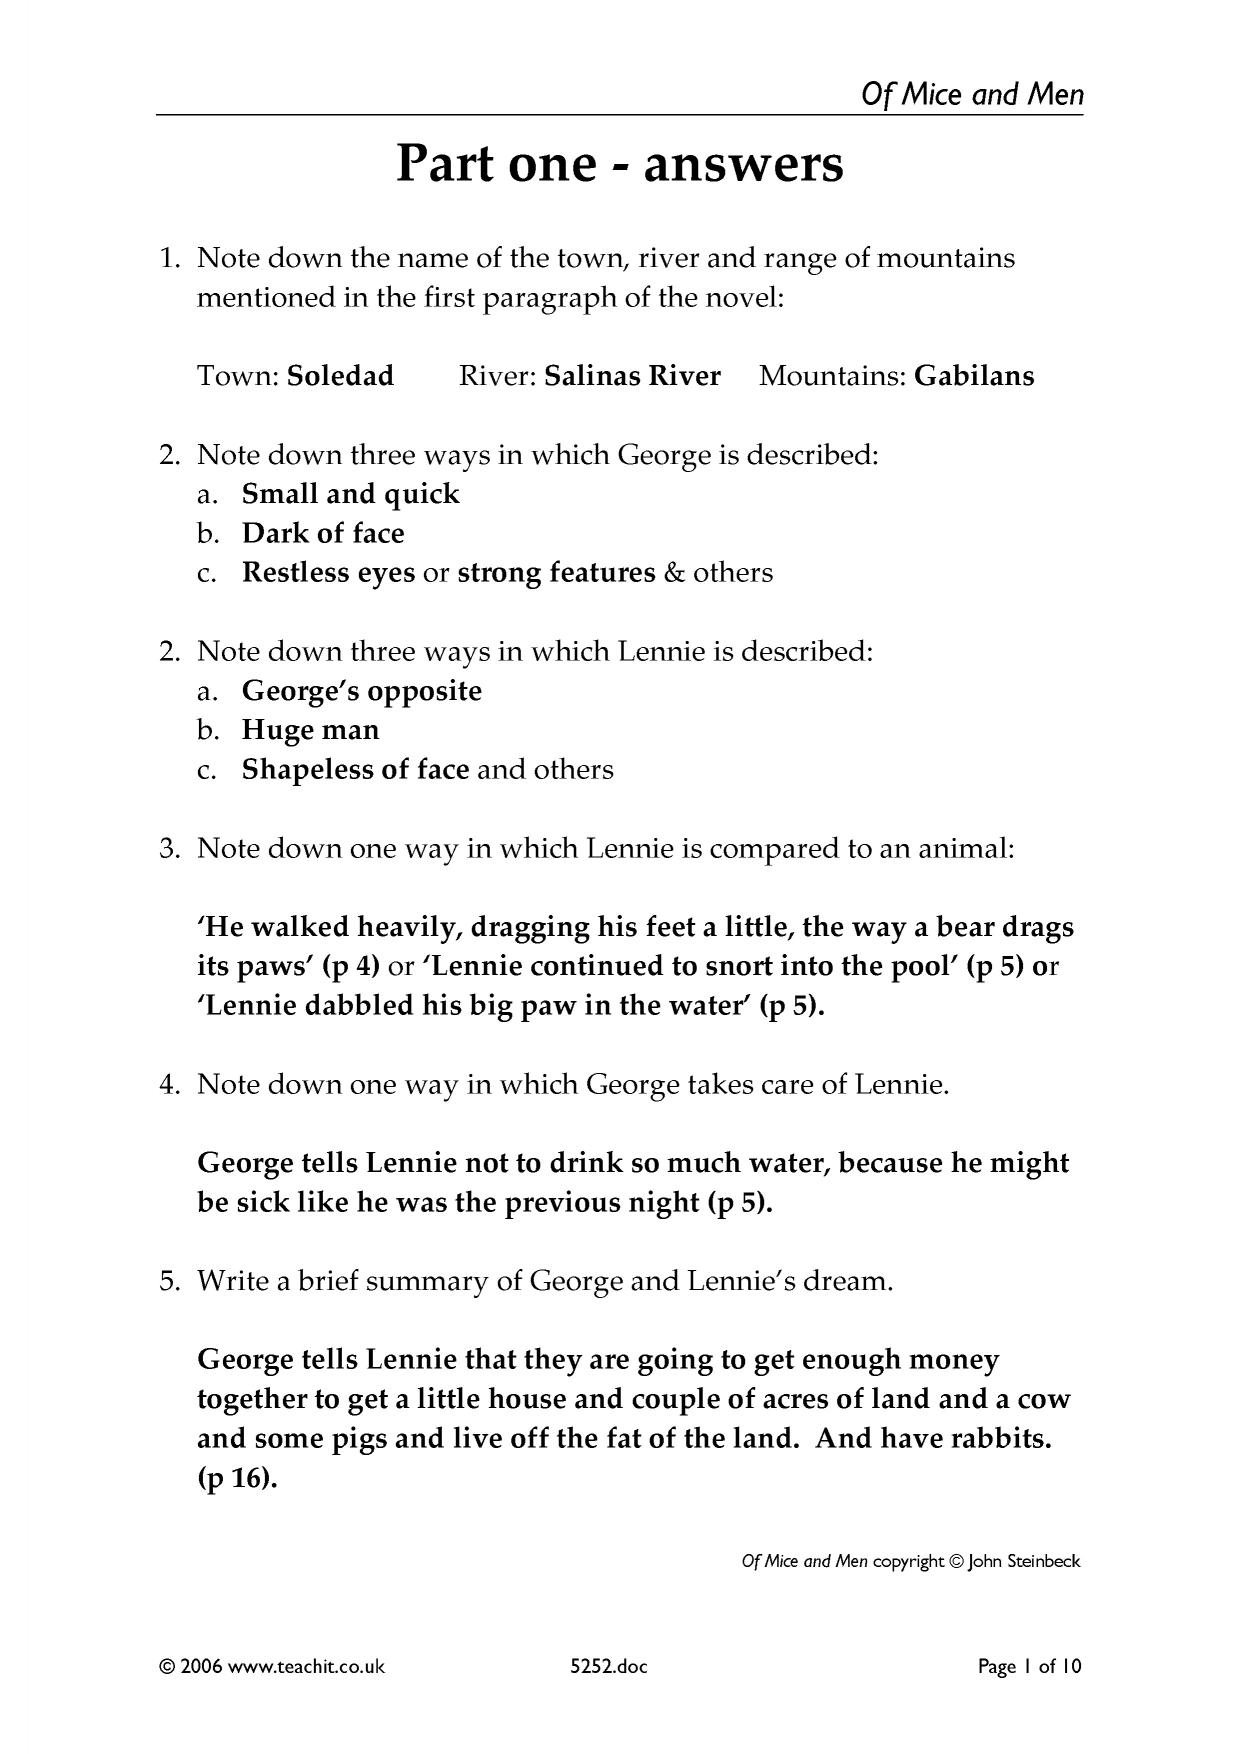 of mice and men an inspector calls essay Page 1 of 2 - anyone doing of mice and men/inspector calls exam tomorrow - posted in forums cafe: helloo, thought i might see if anyone else is doing this exam tomorrow and if so maybe we could have a little discussion as a revision thing.